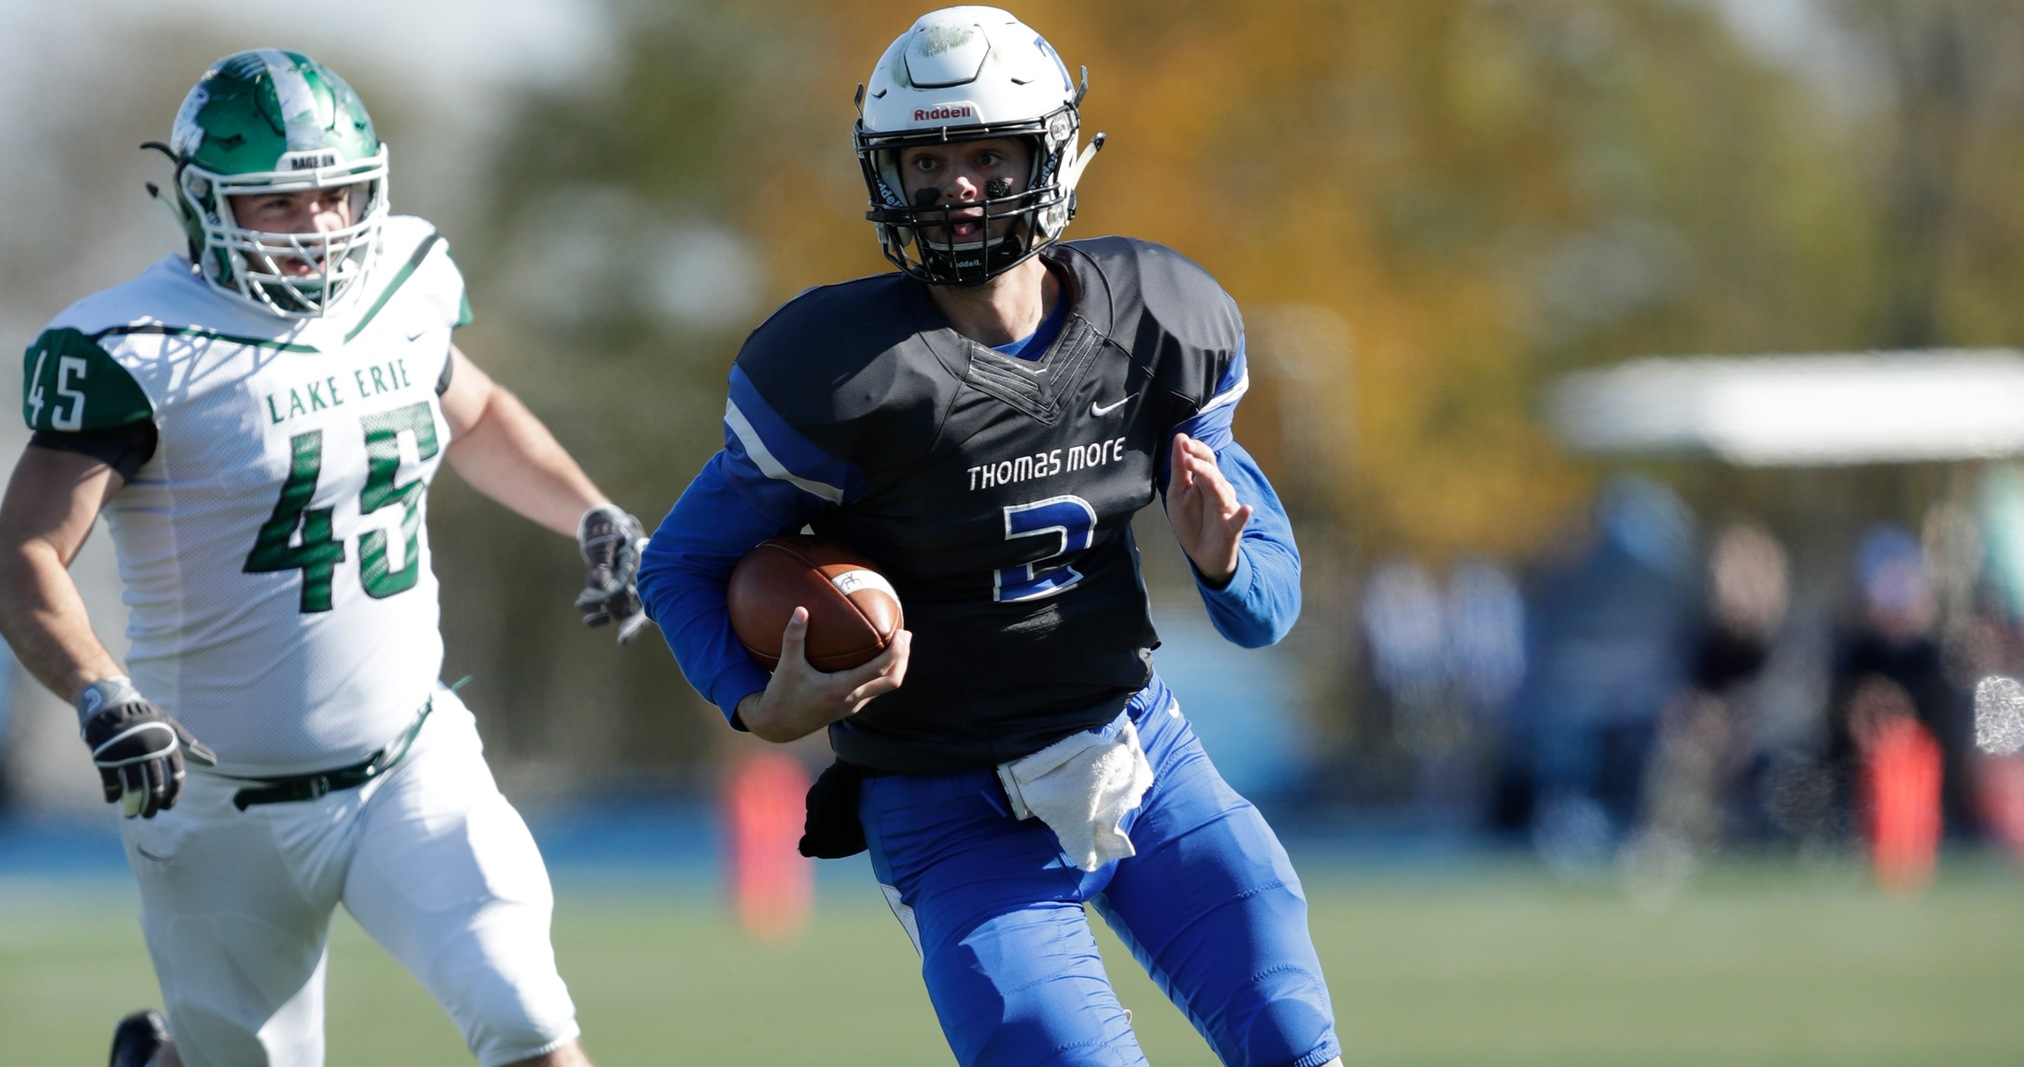 Thomas More Shuts Out Division II Lake Erie, 44-0